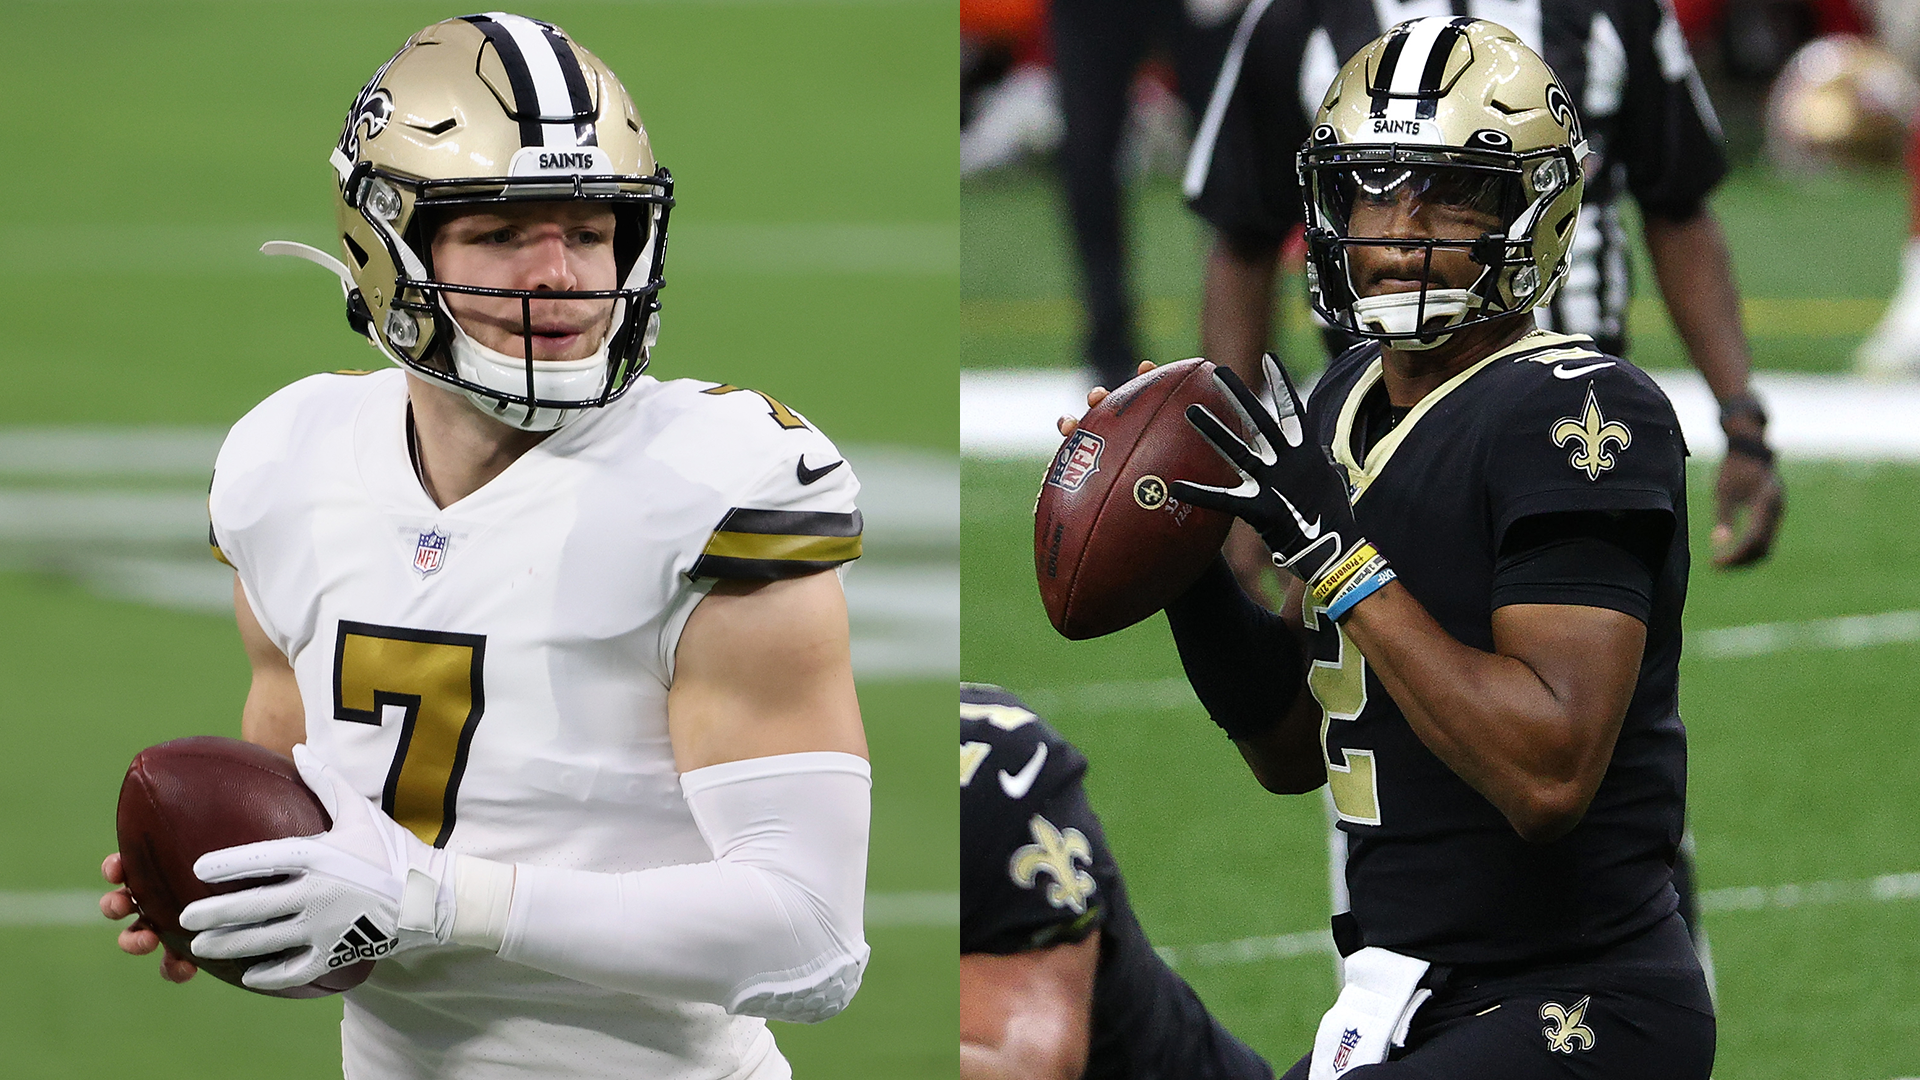 What's next for Saints after Drew Brees? Exploring 2021 QB options, from Taysom Hill to NFL Draft